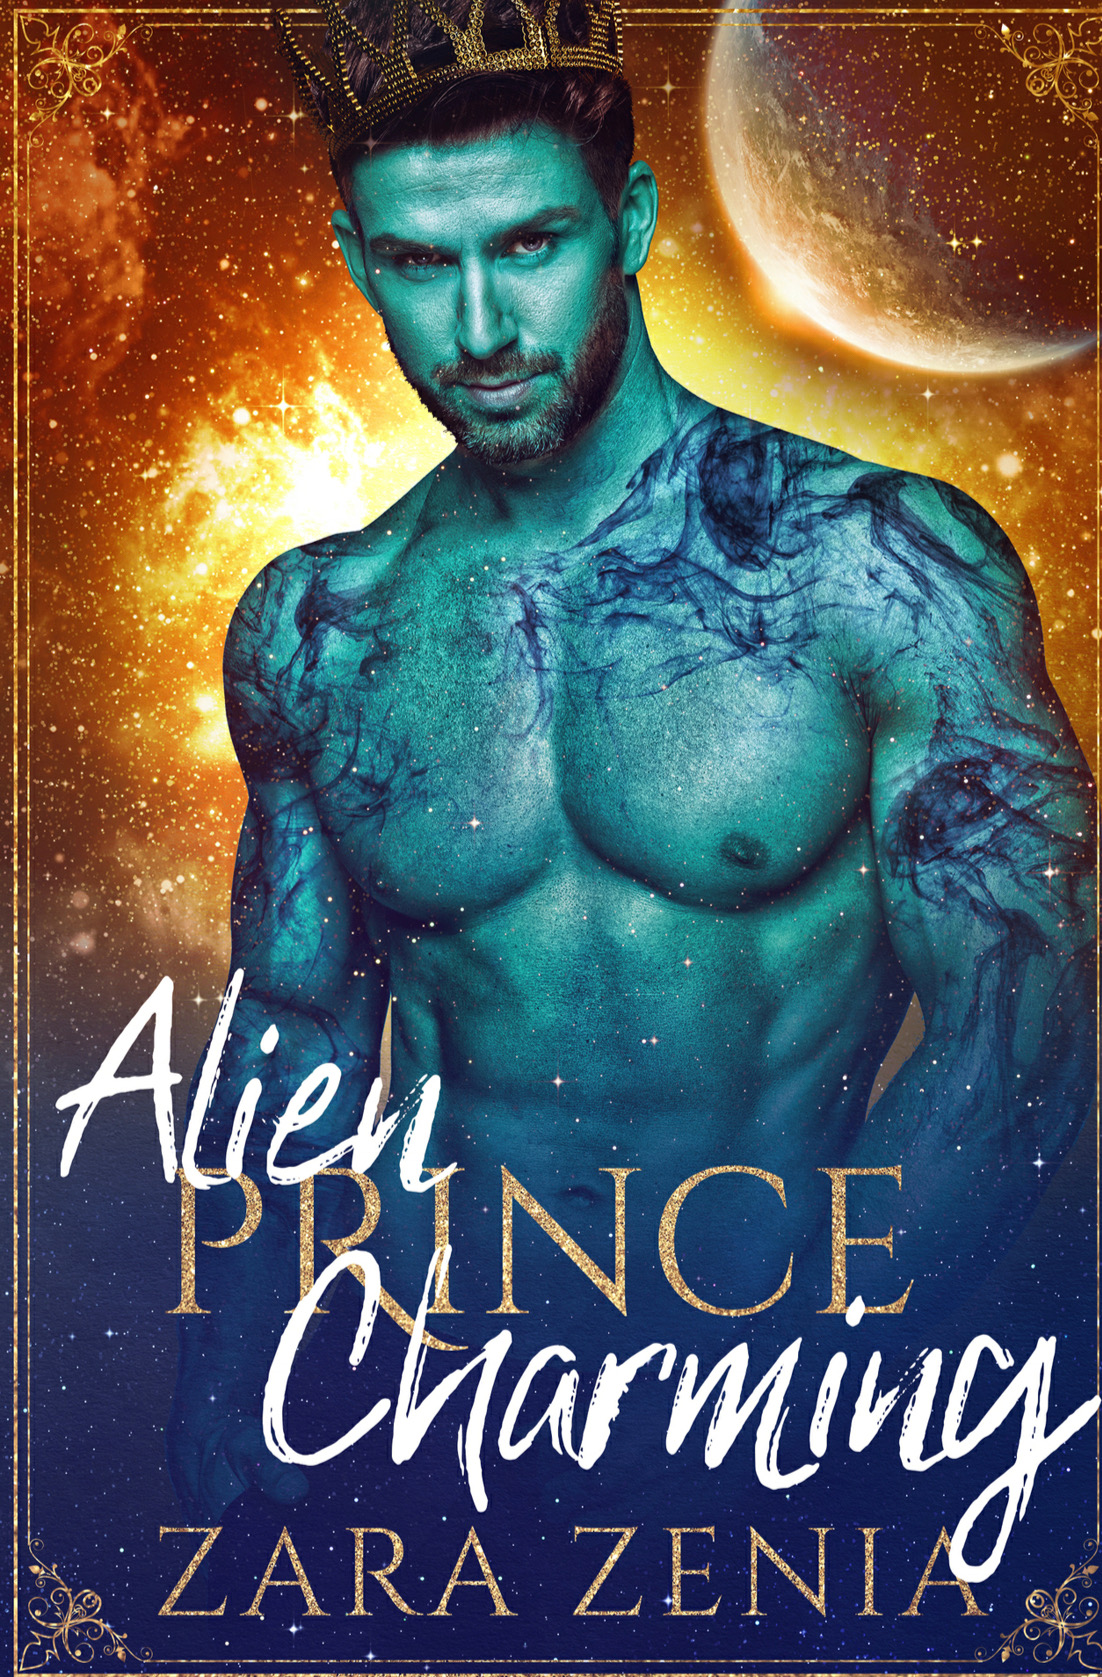 Alien Prince Charming by Zara Zenia - A Book Review #BookReview #Review #Alien #Fairytale #HEA #StandAloneWithinSeries #Silly #KU